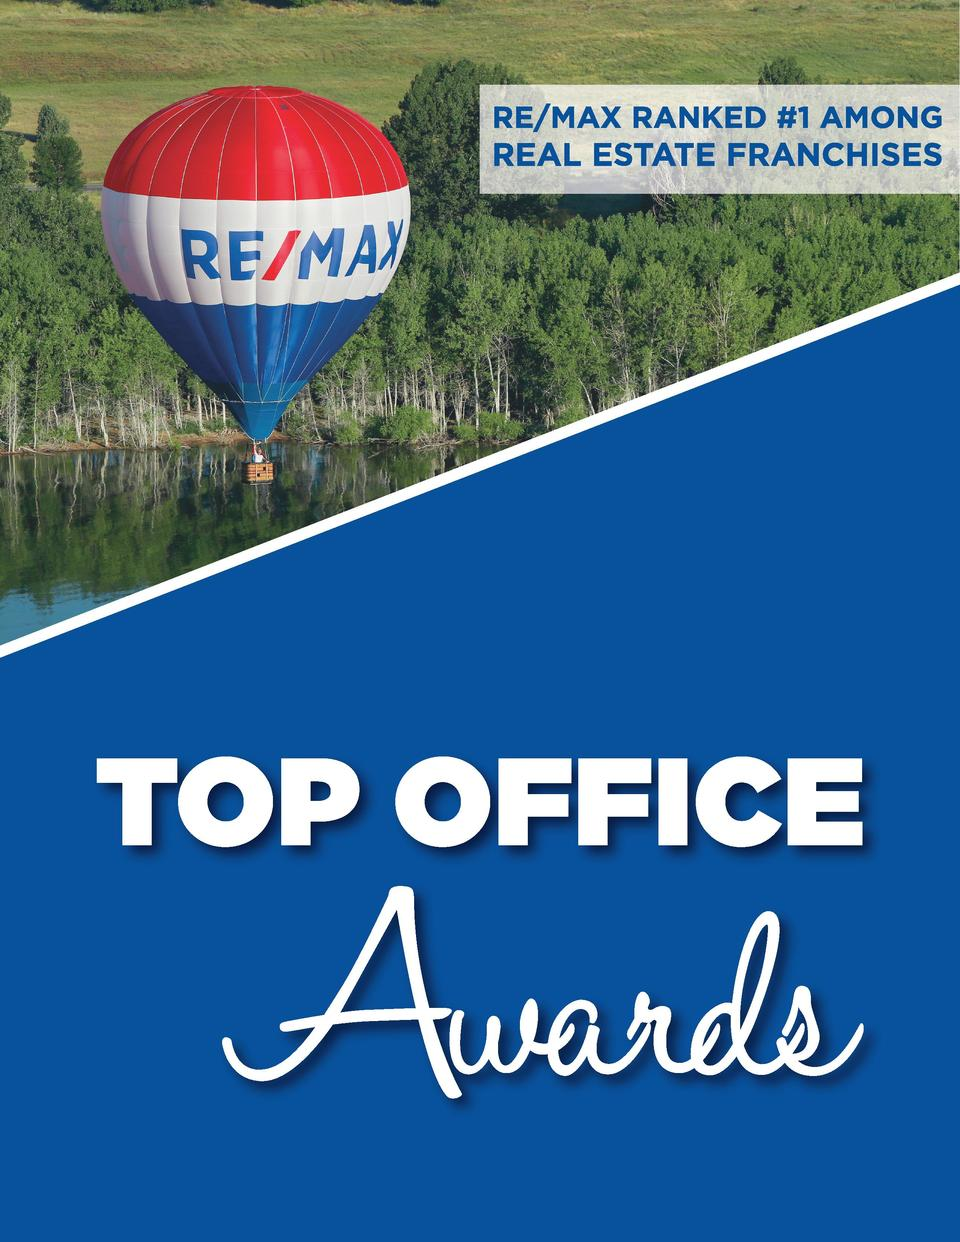 TOP OFFICE  Awards